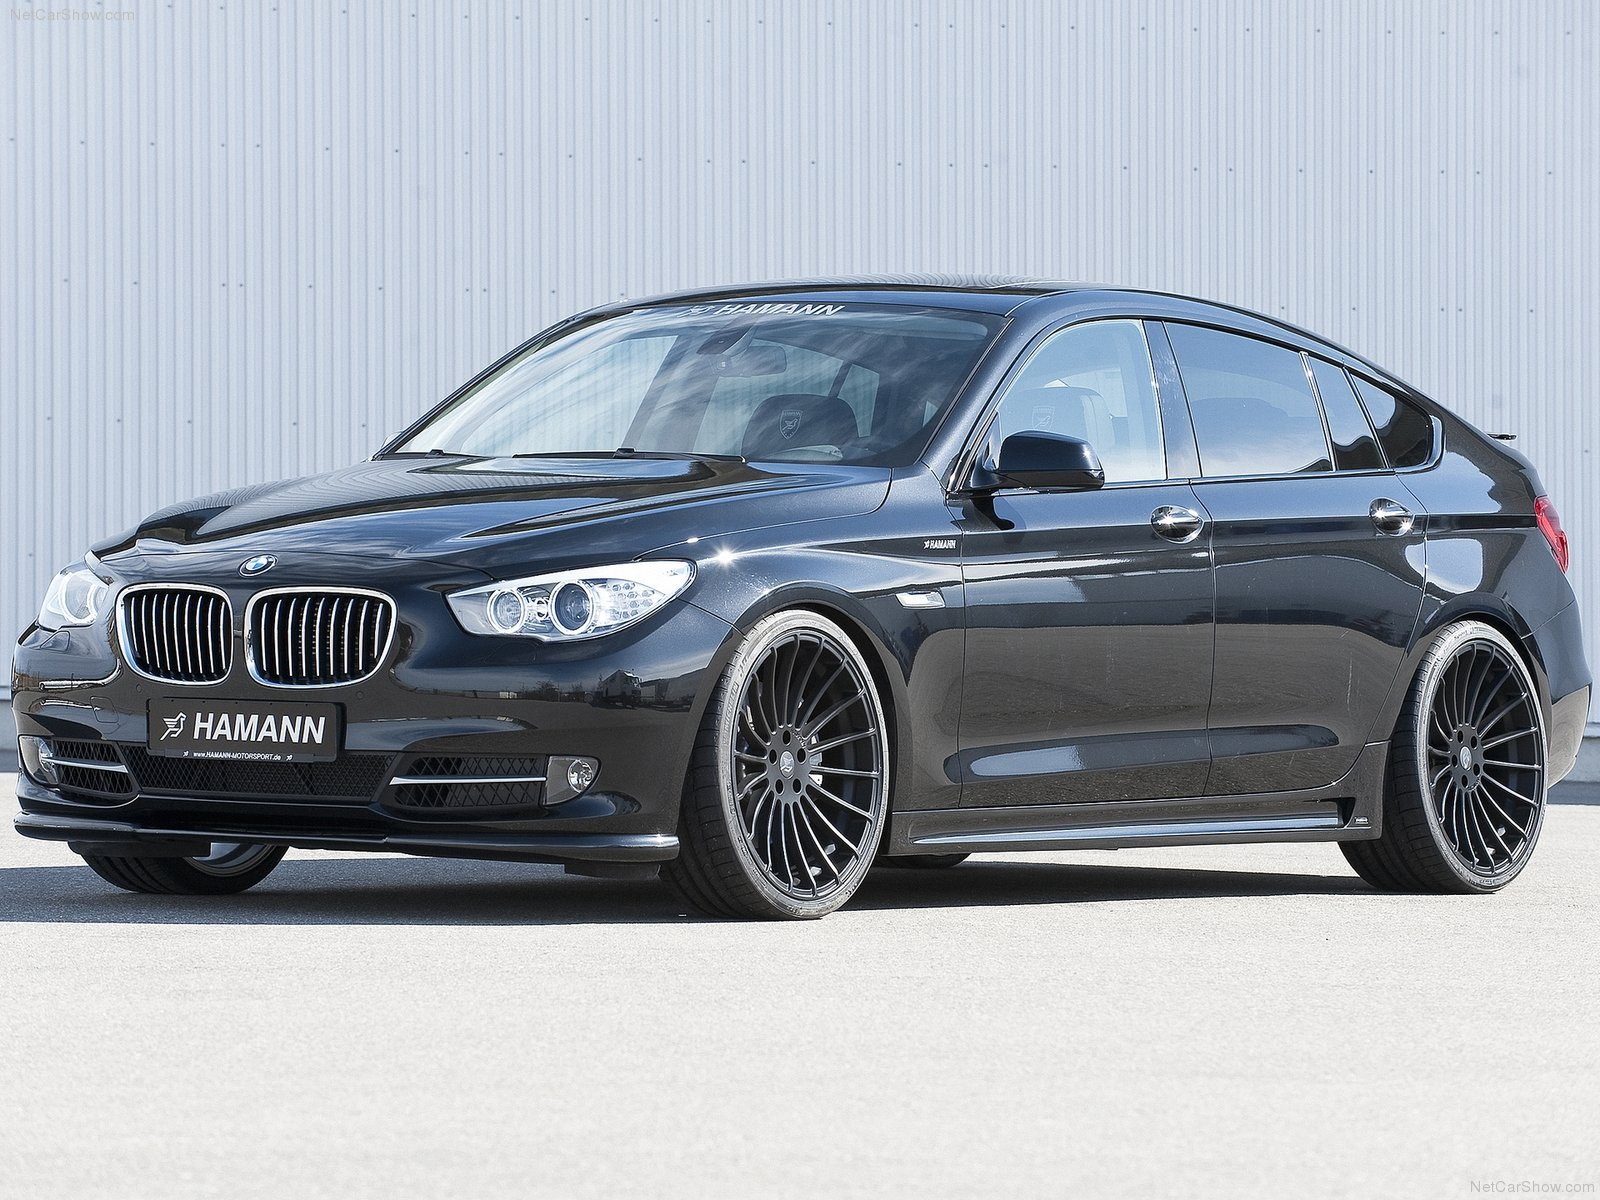 Hamann Bmw 5 Series Gt Photos Photogallery With 13 Pics